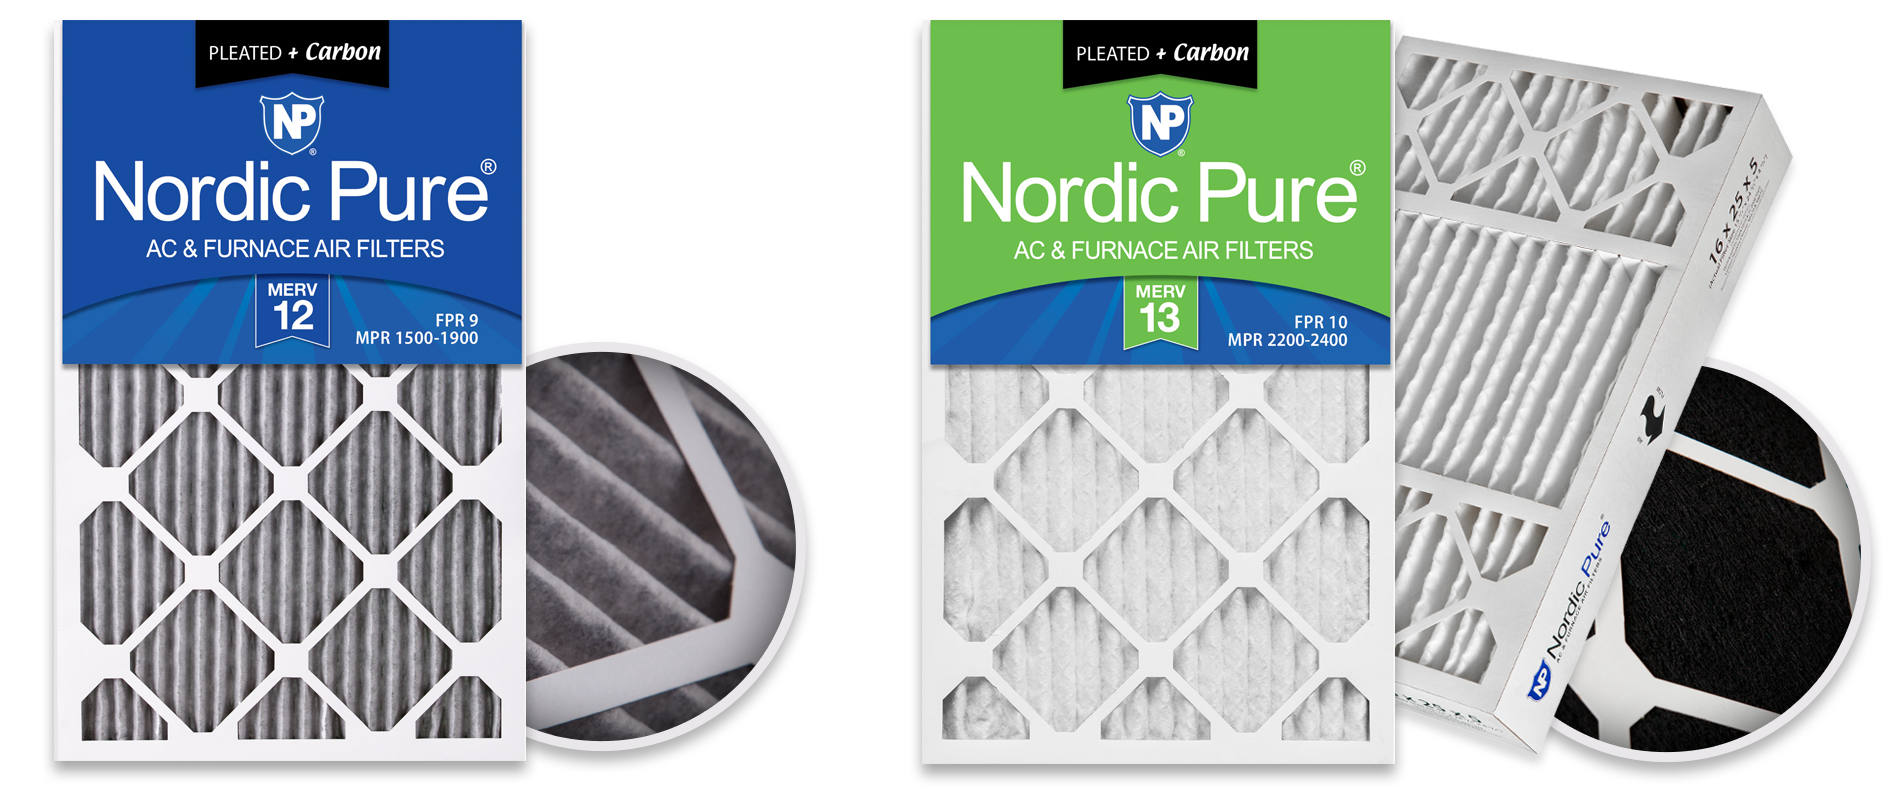 Nordic Pure MERV 12 and MERV 13 Pleated Plus Carbon